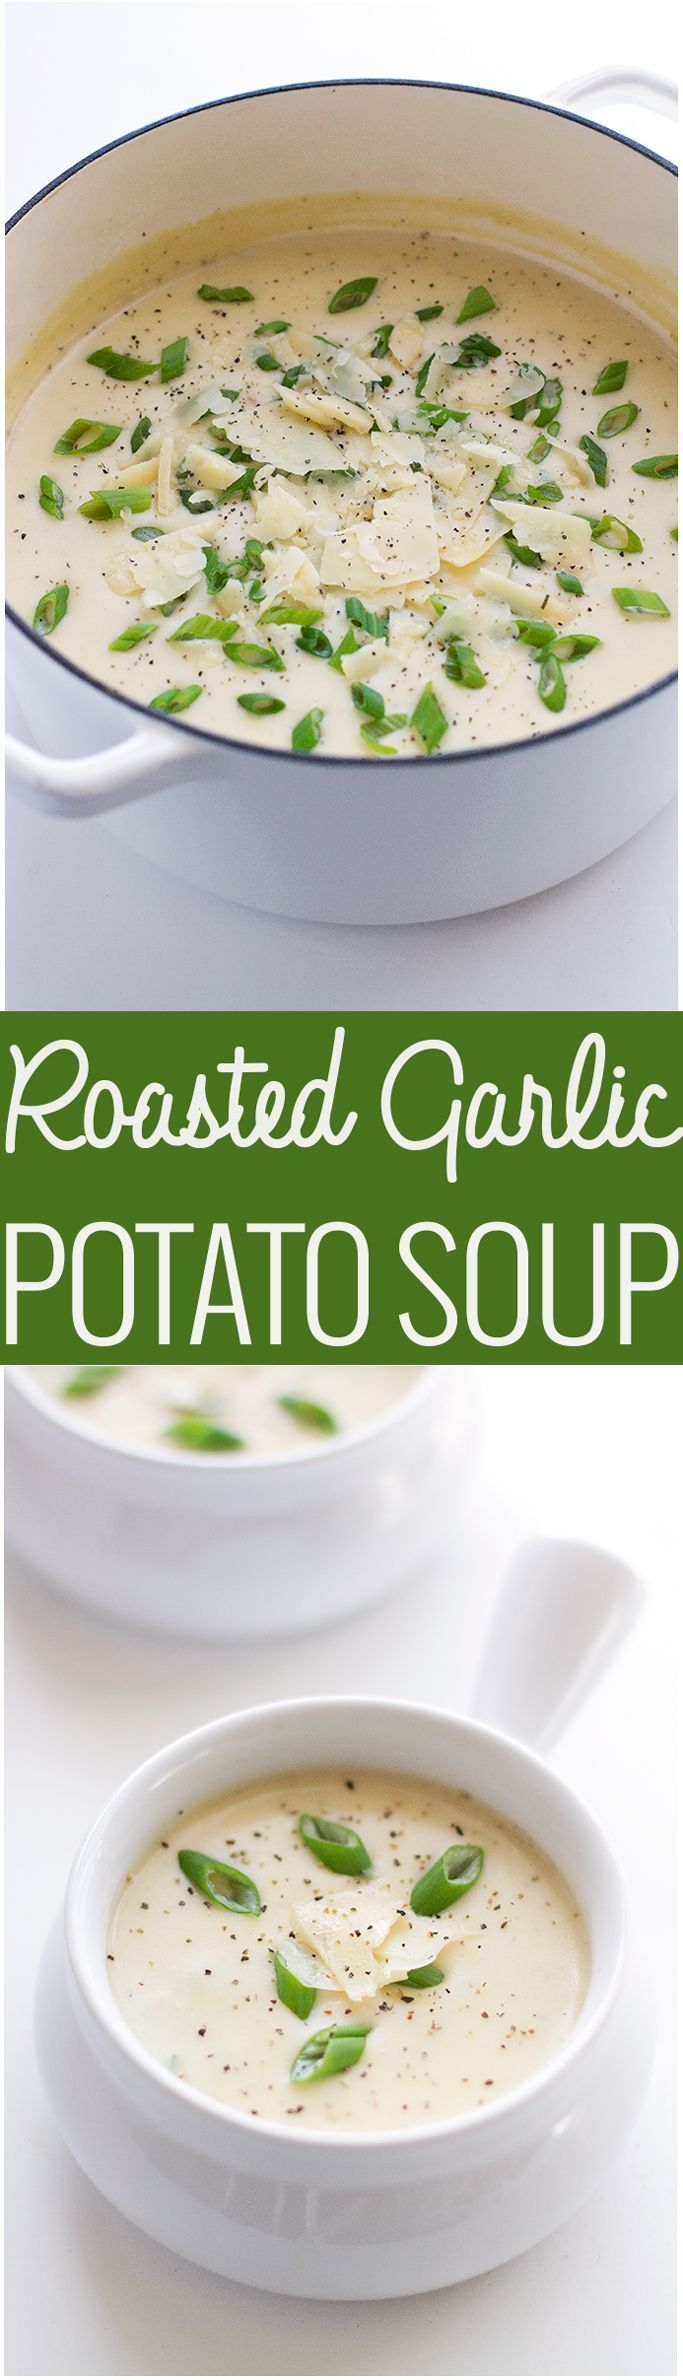 Roasted Garlic Potato Soup - This creamy luxurious soup is loaded with so much flavor! #potatosoup #garlicsoup #roastedgarlic | Littlespicejar.com